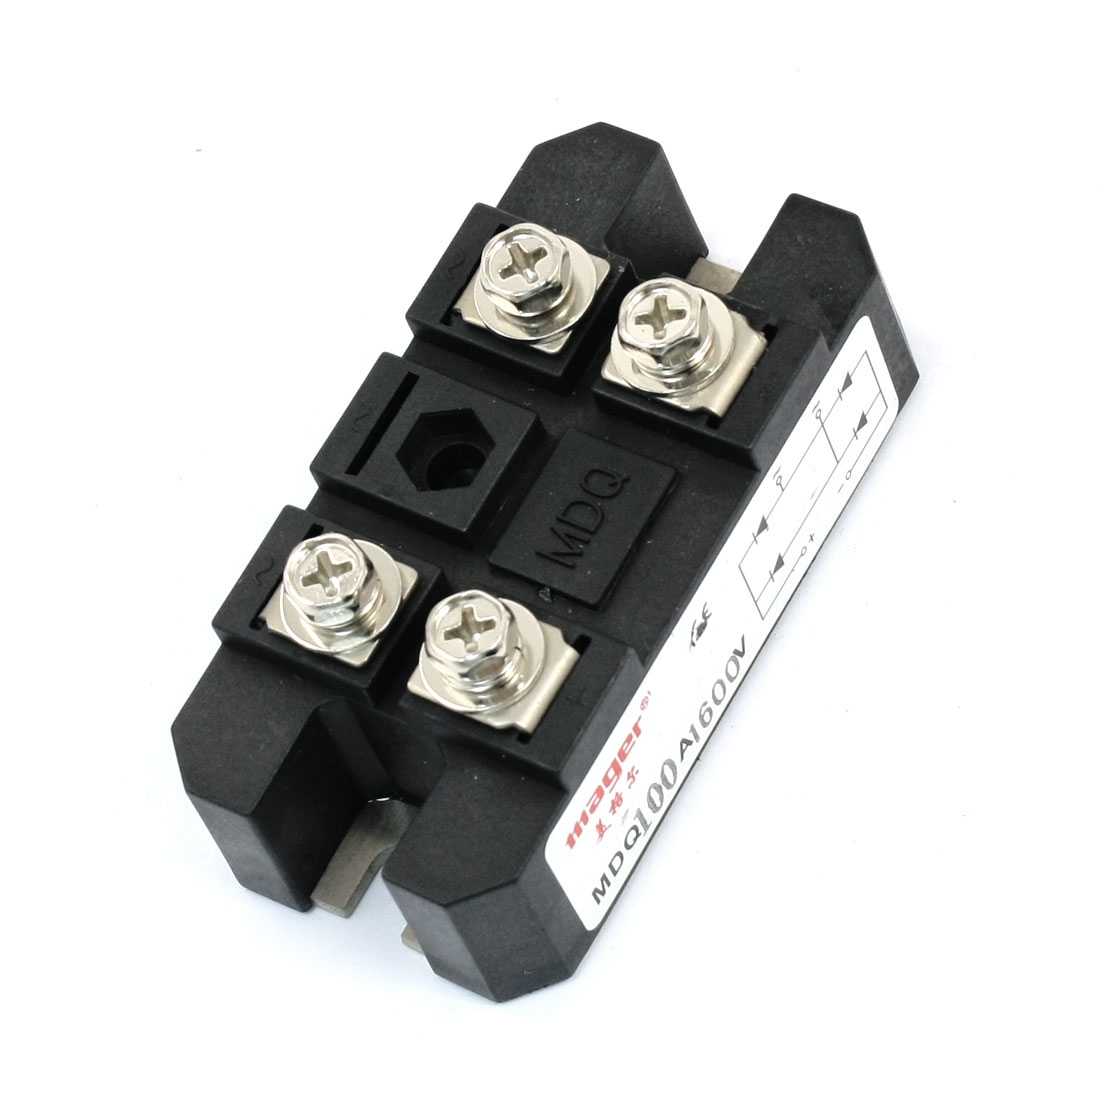 1600V Repetitive Reverse Voltage 100A 4 Screw Terminals Single Phase Semi-Conductor Diode Module Bridge Rectifier